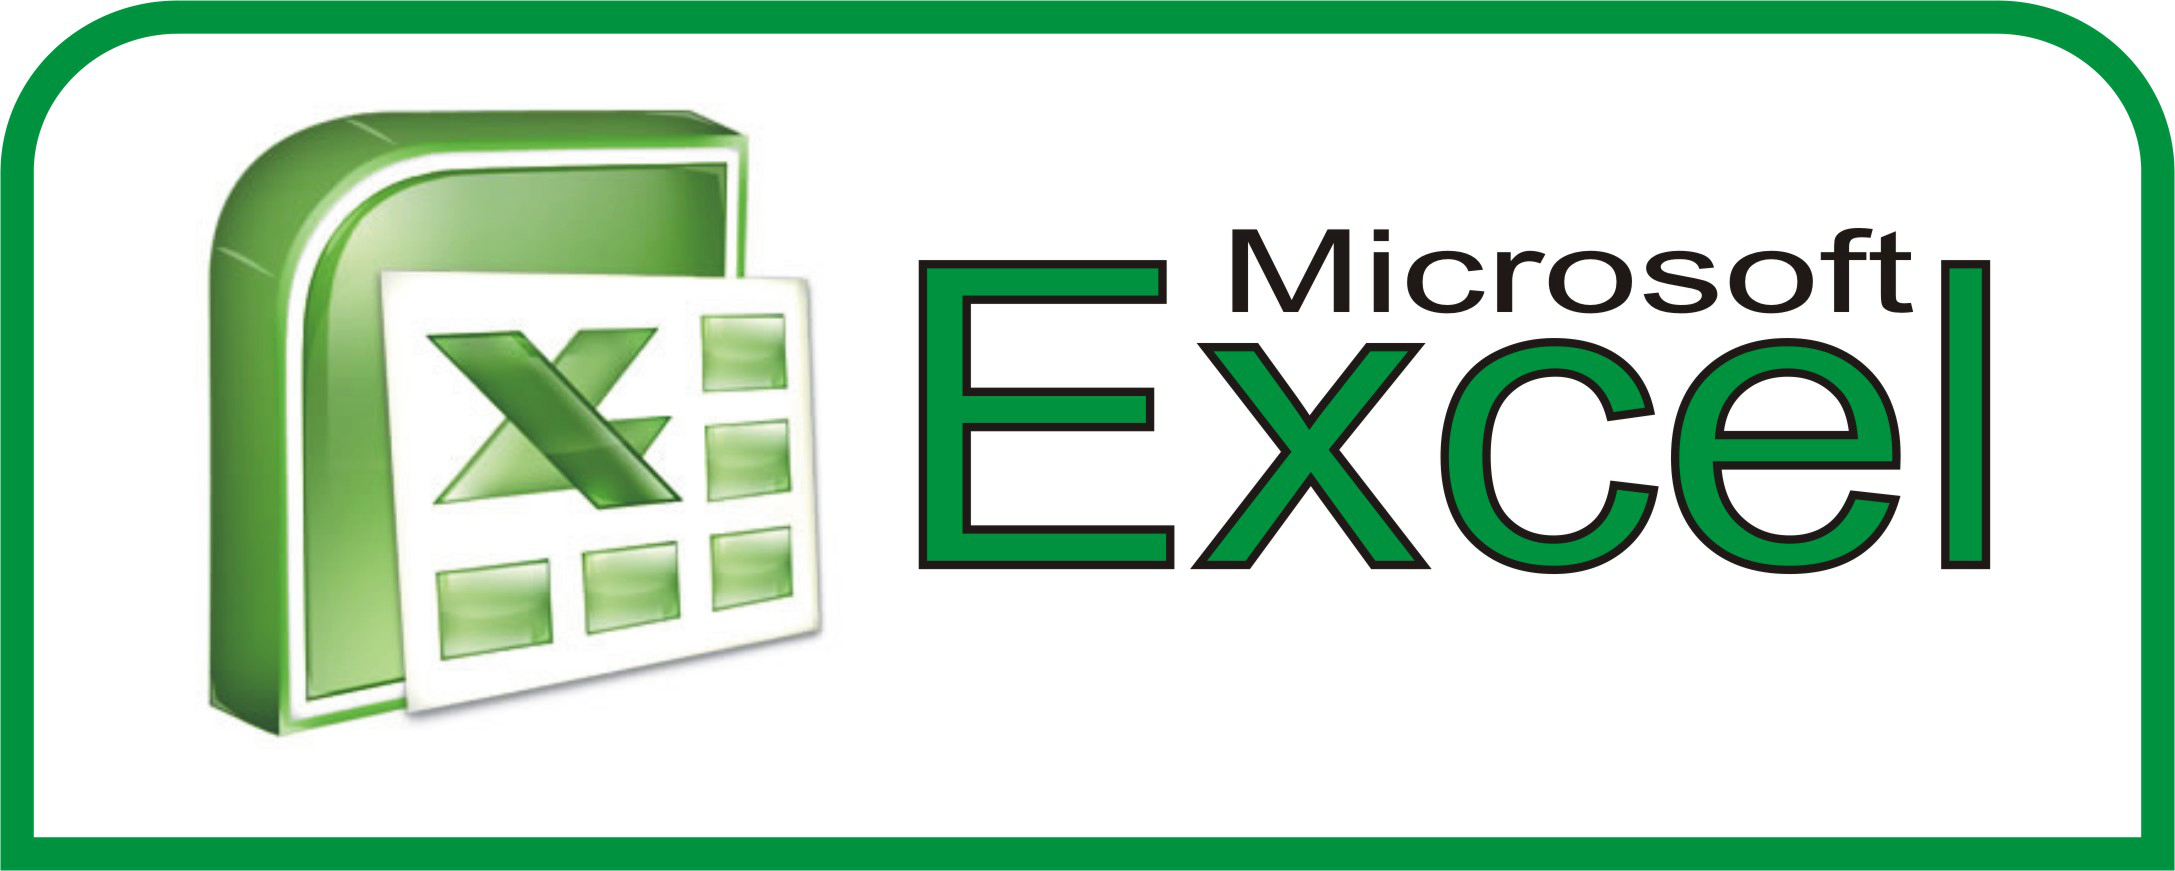 Ediblewildsus  Gorgeous  Excel Shortcuts You Probably Didnt Know About  Techdissected With Inspiring How To Use In Excel Besides How To Insert A Checkbox In Excel  Furthermore How To Use Countifs In Excel With Alluring How To Freeze In Excel Also Excel Flowchart In Addition Merge Excel Cells And How To Make A List In Excel As Well As Excel Google Docs Additionally Cool Excel Tricks From Techdissectedcom With Ediblewildsus  Inspiring  Excel Shortcuts You Probably Didnt Know About  Techdissected With Alluring How To Use In Excel Besides How To Insert A Checkbox In Excel  Furthermore How To Use Countifs In Excel And Gorgeous How To Freeze In Excel Also Excel Flowchart In Addition Merge Excel Cells From Techdissectedcom